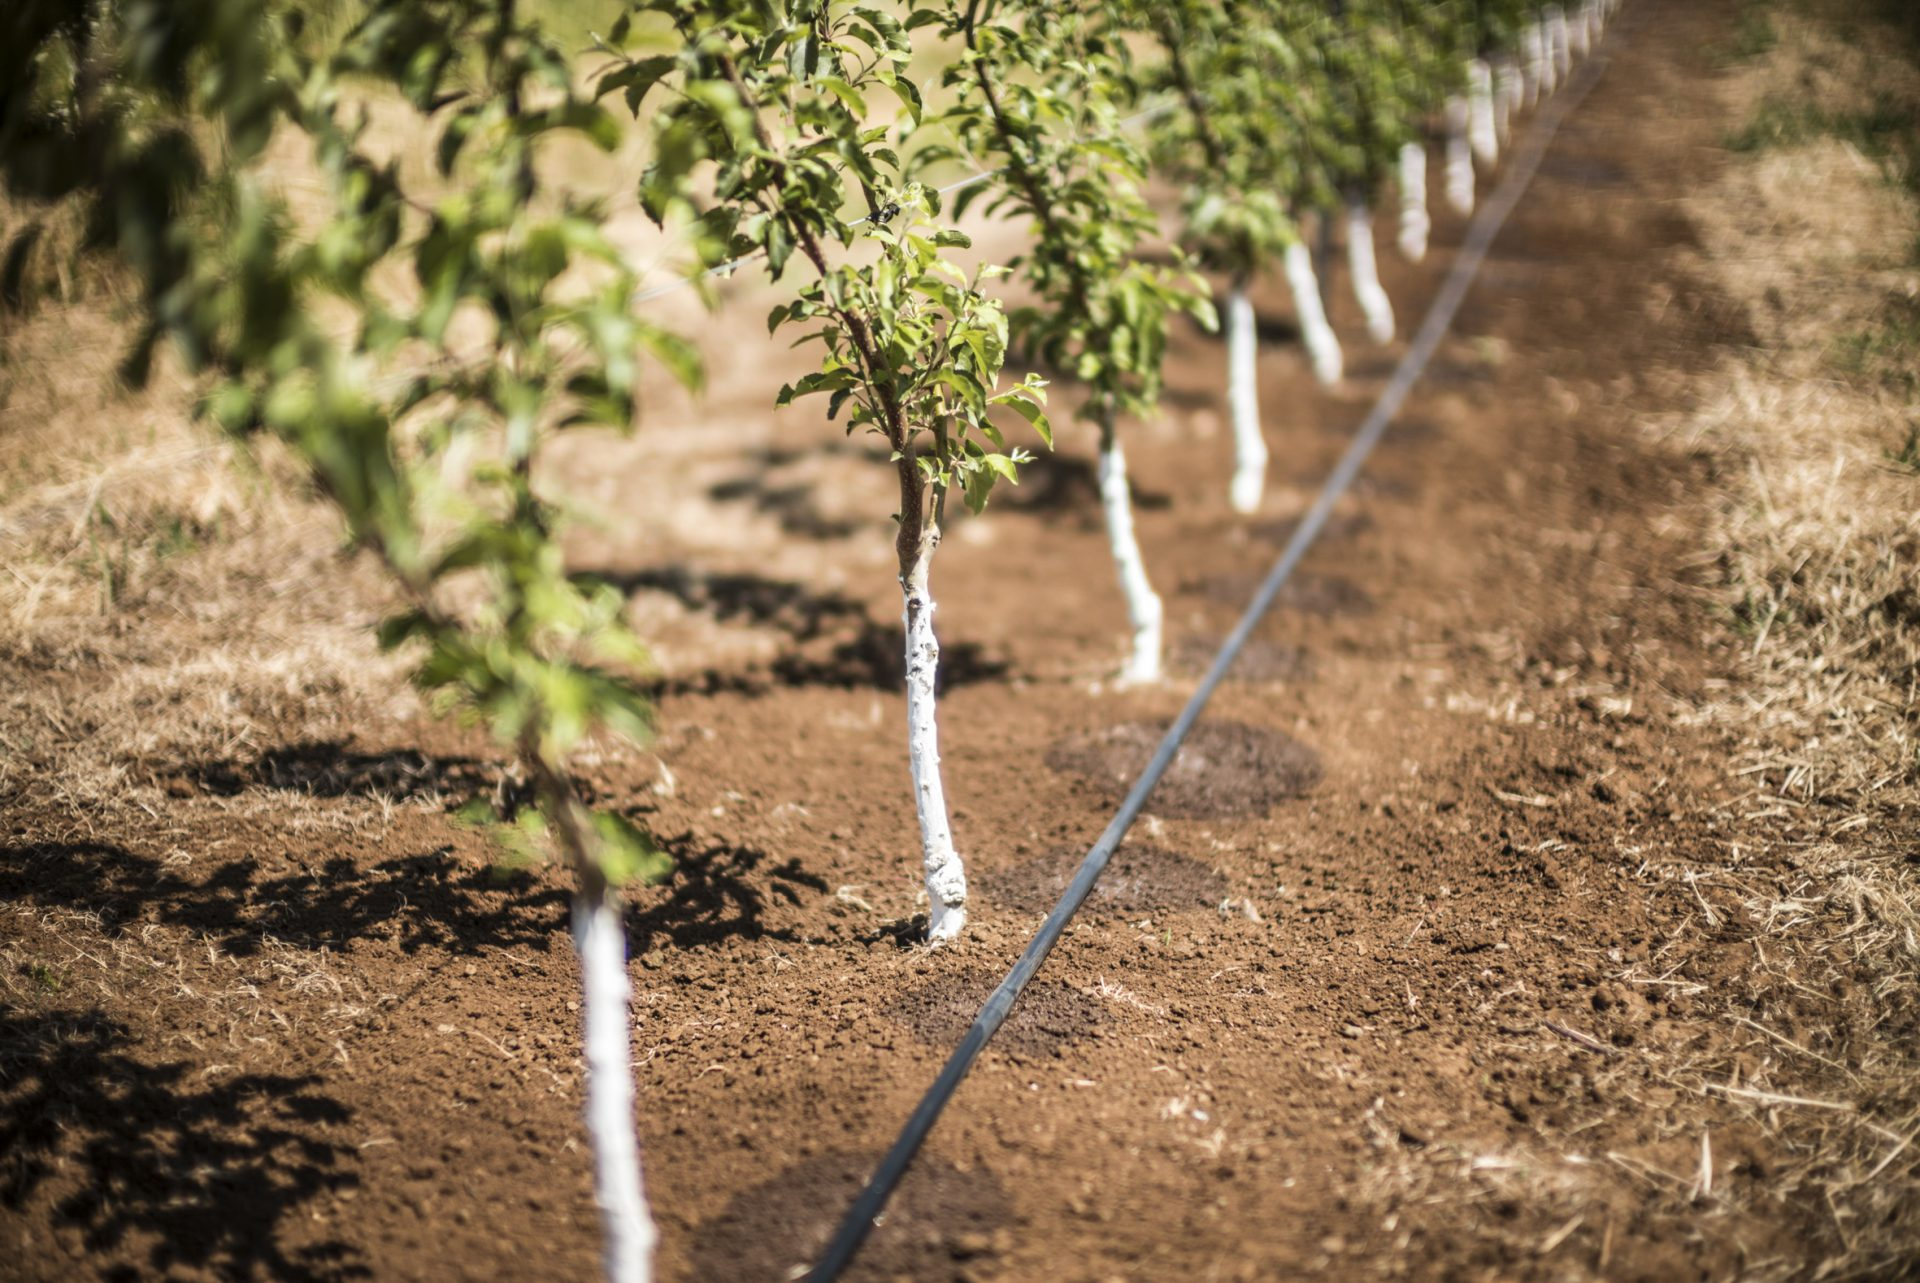 drip irrigation installation for orchards